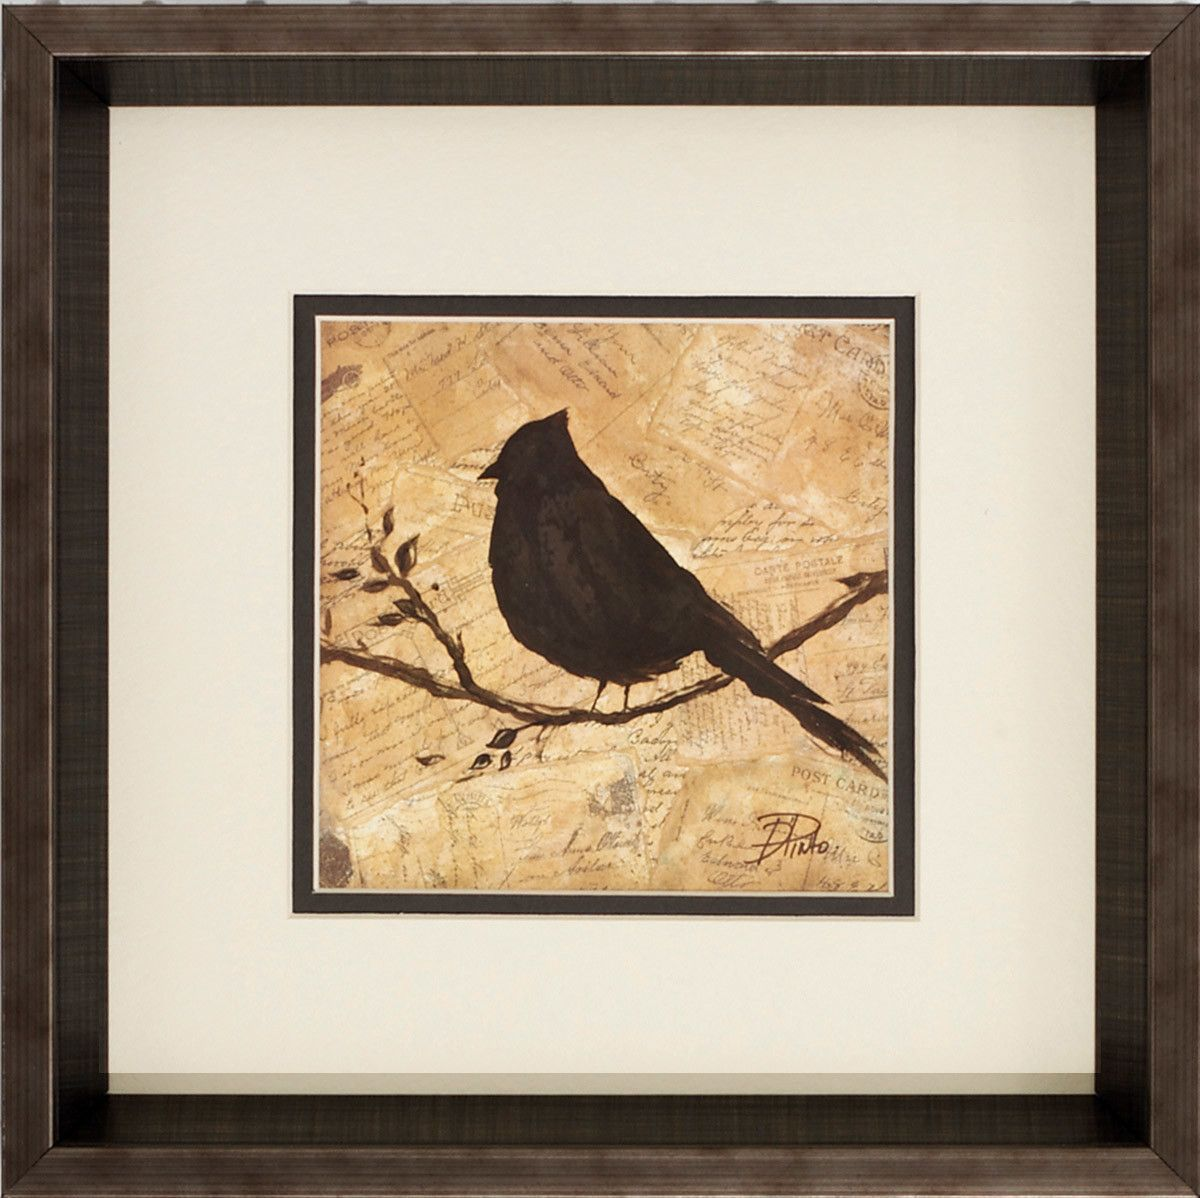 Bird Silhouette 2 Piece Framed Graphic Art Set | Products ...